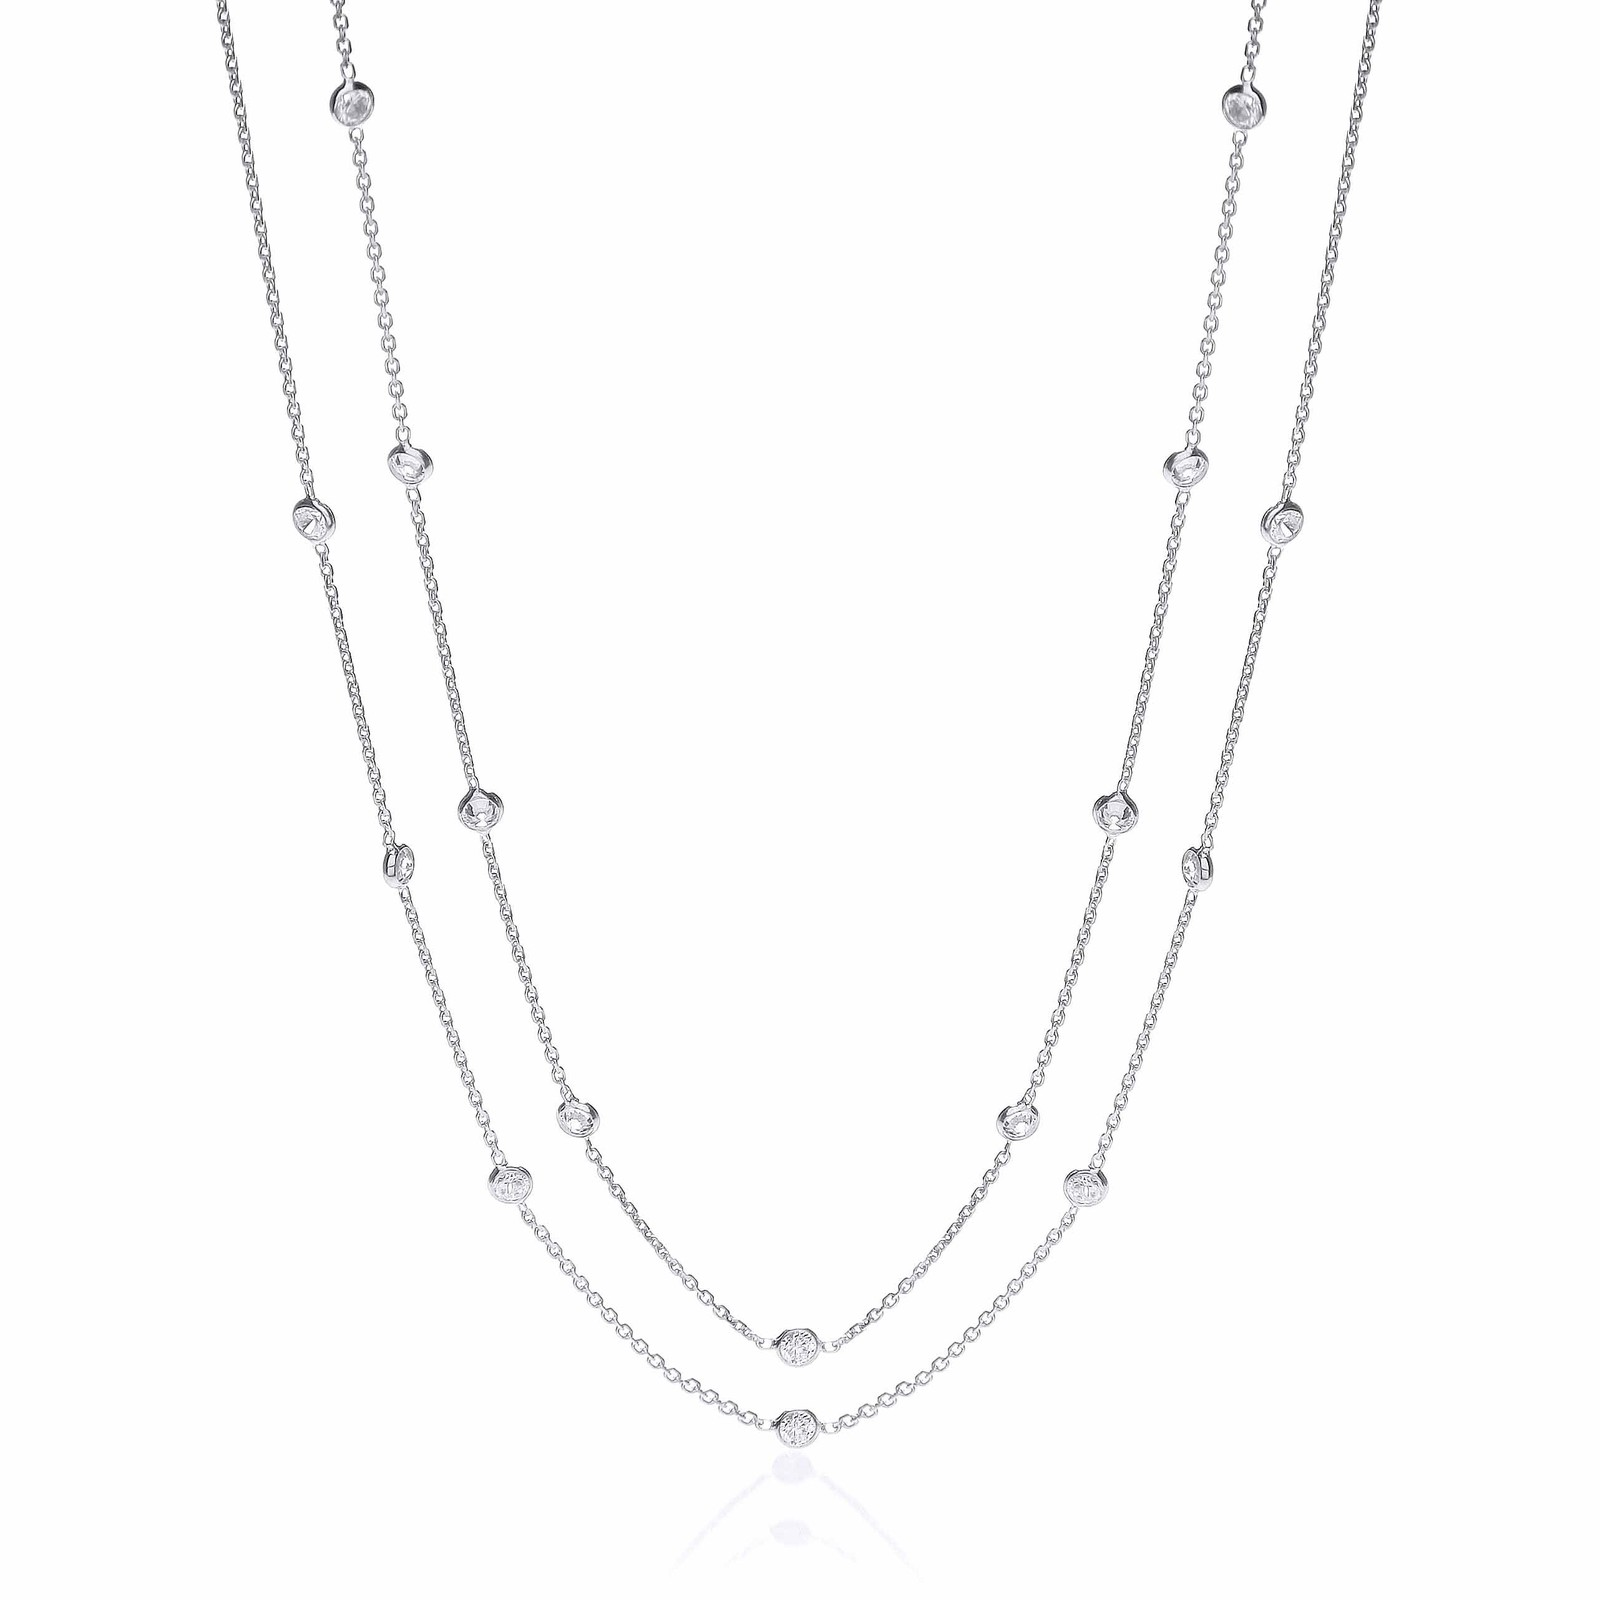 Silver Rubover 23 Cz's Necklace 38""